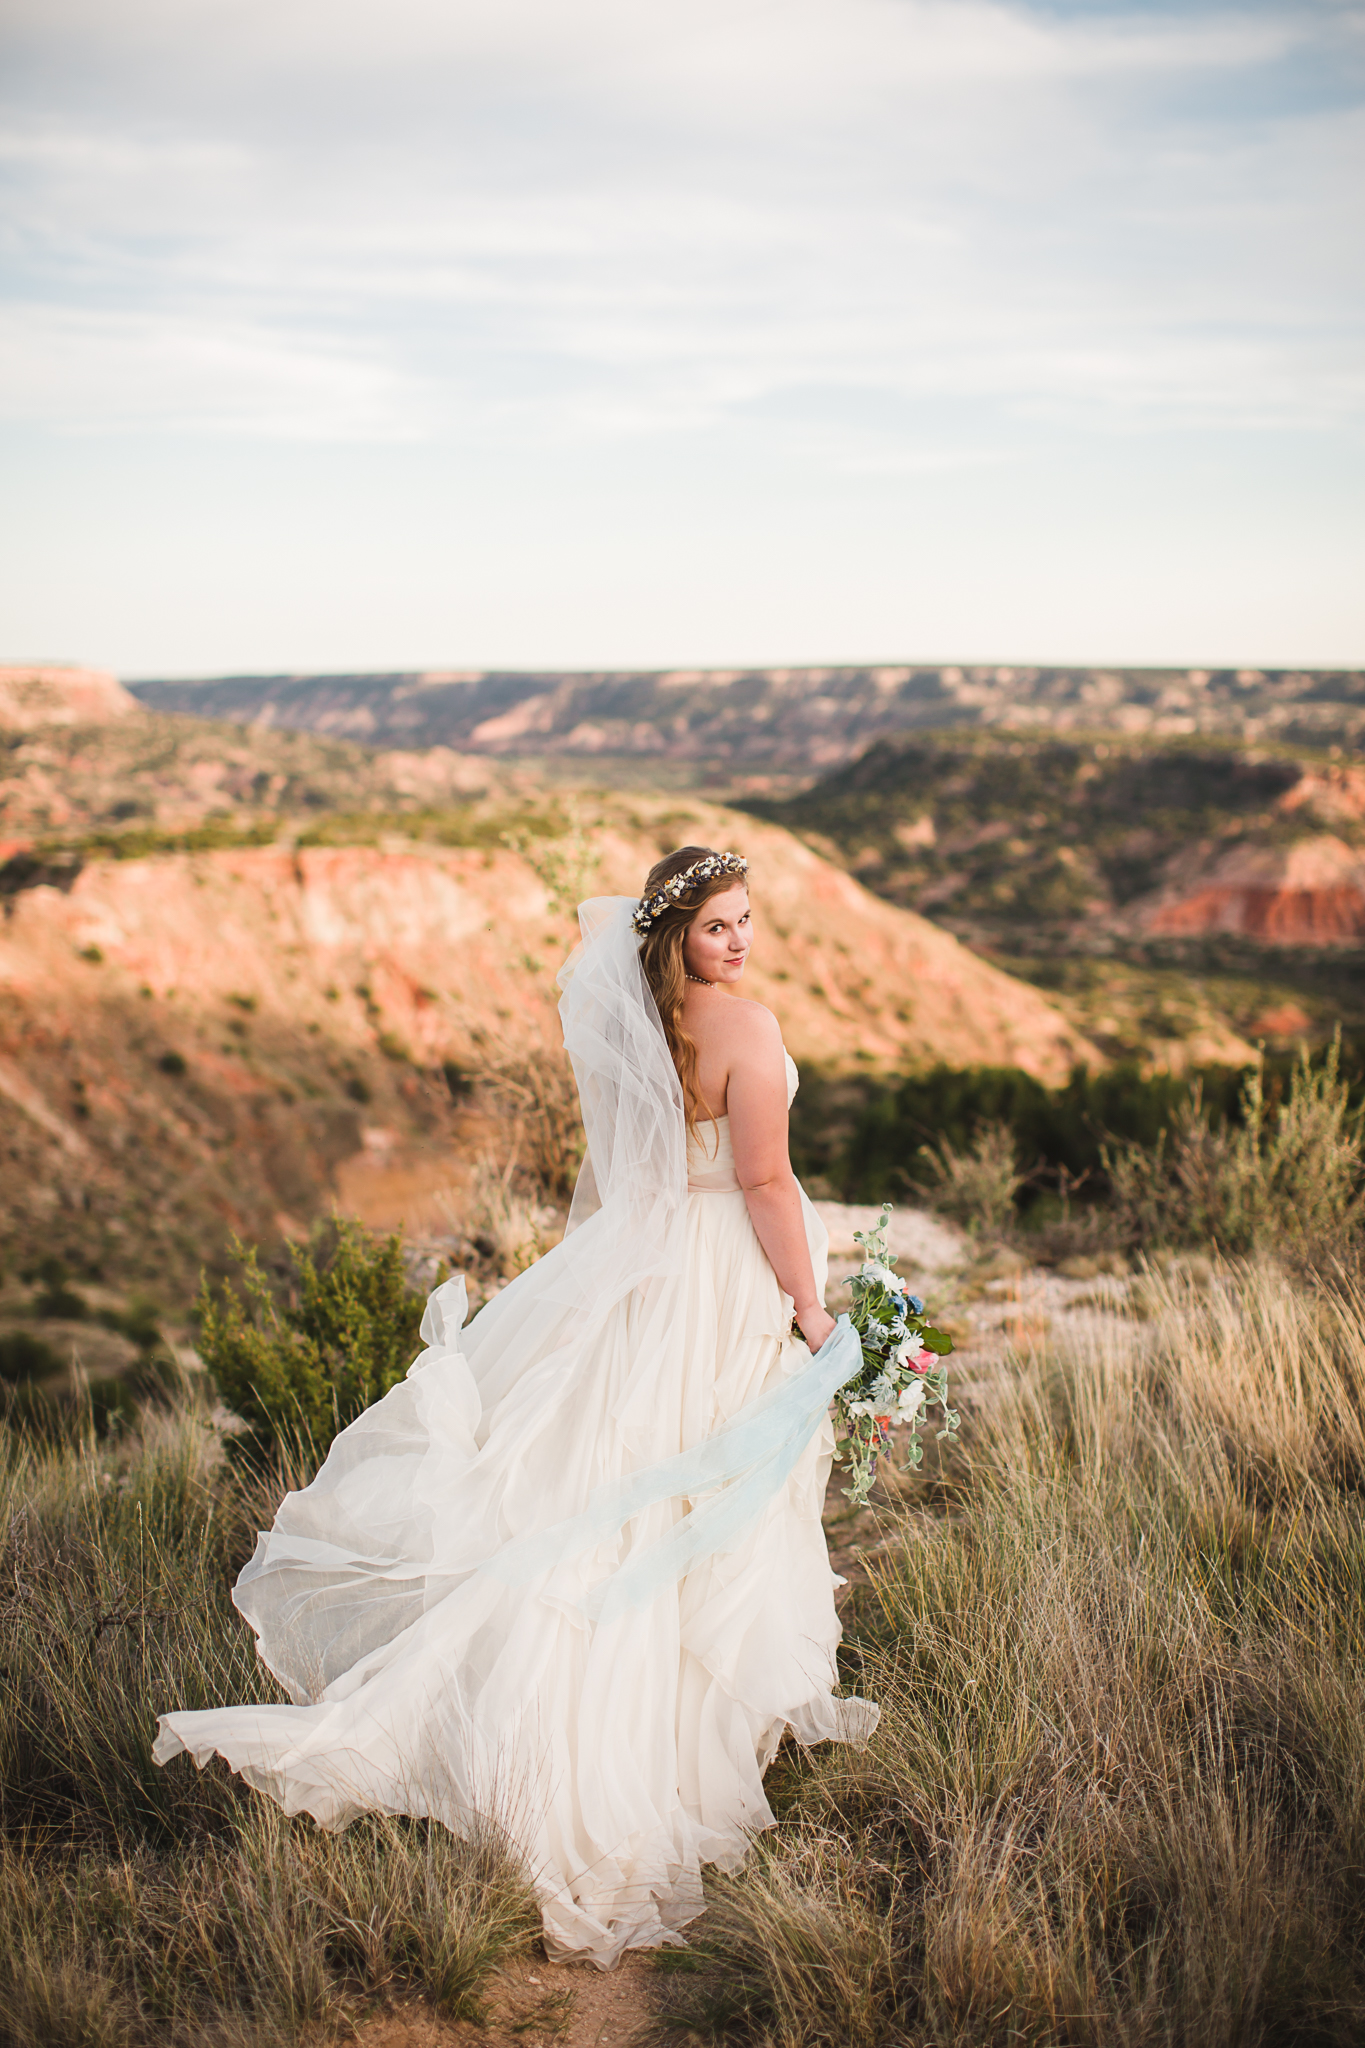 When I took this photo I about died - the dress, her smile, the wind - it was a perfect moment.